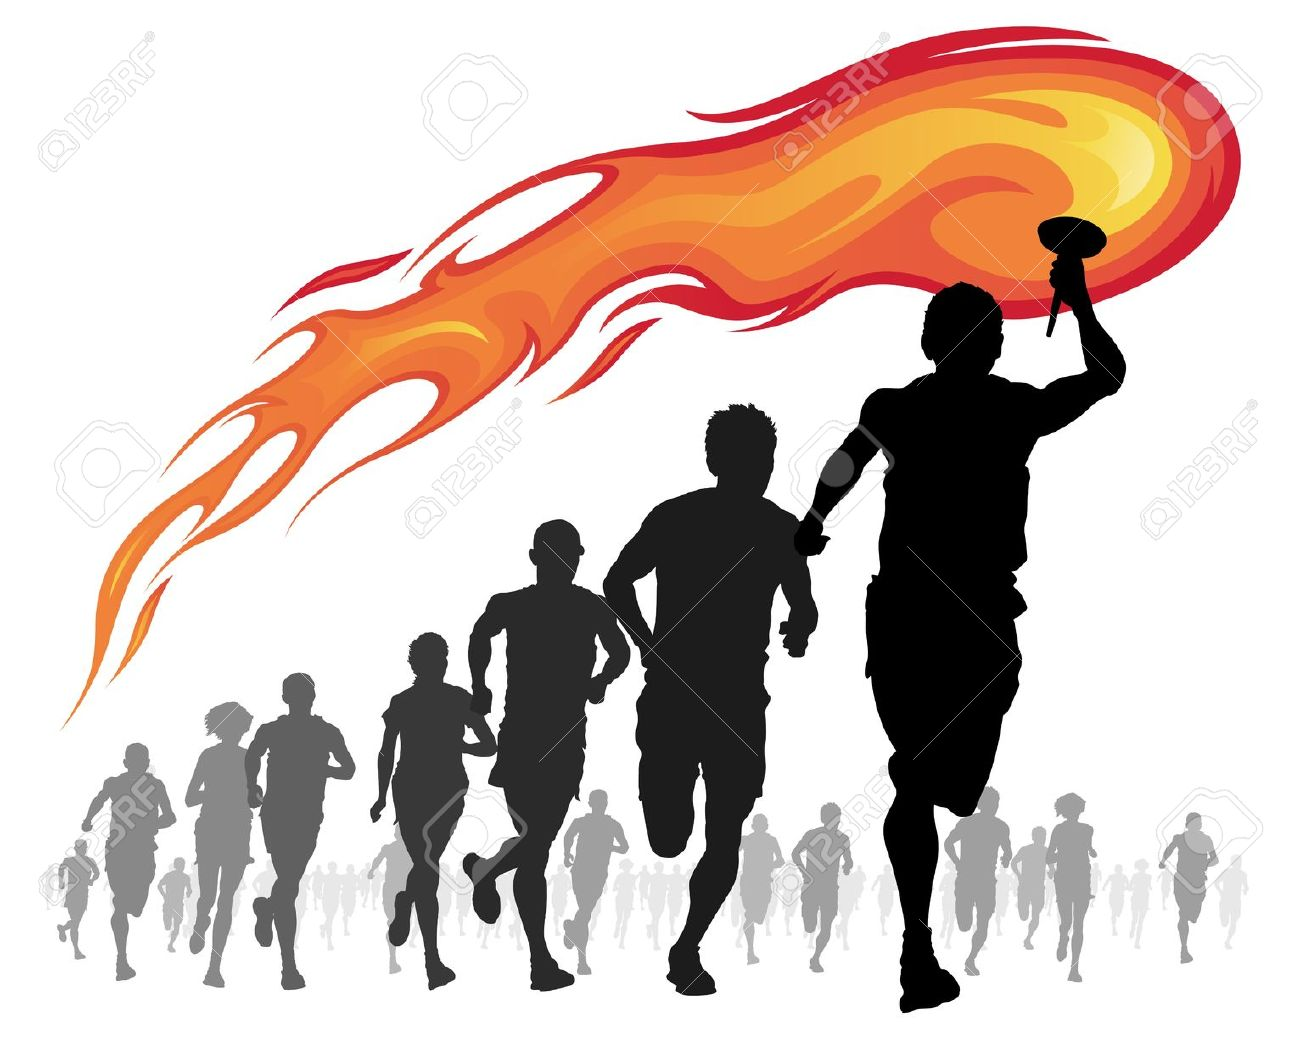 Torch clipart torch bearer Torch Collection art Happy clipart